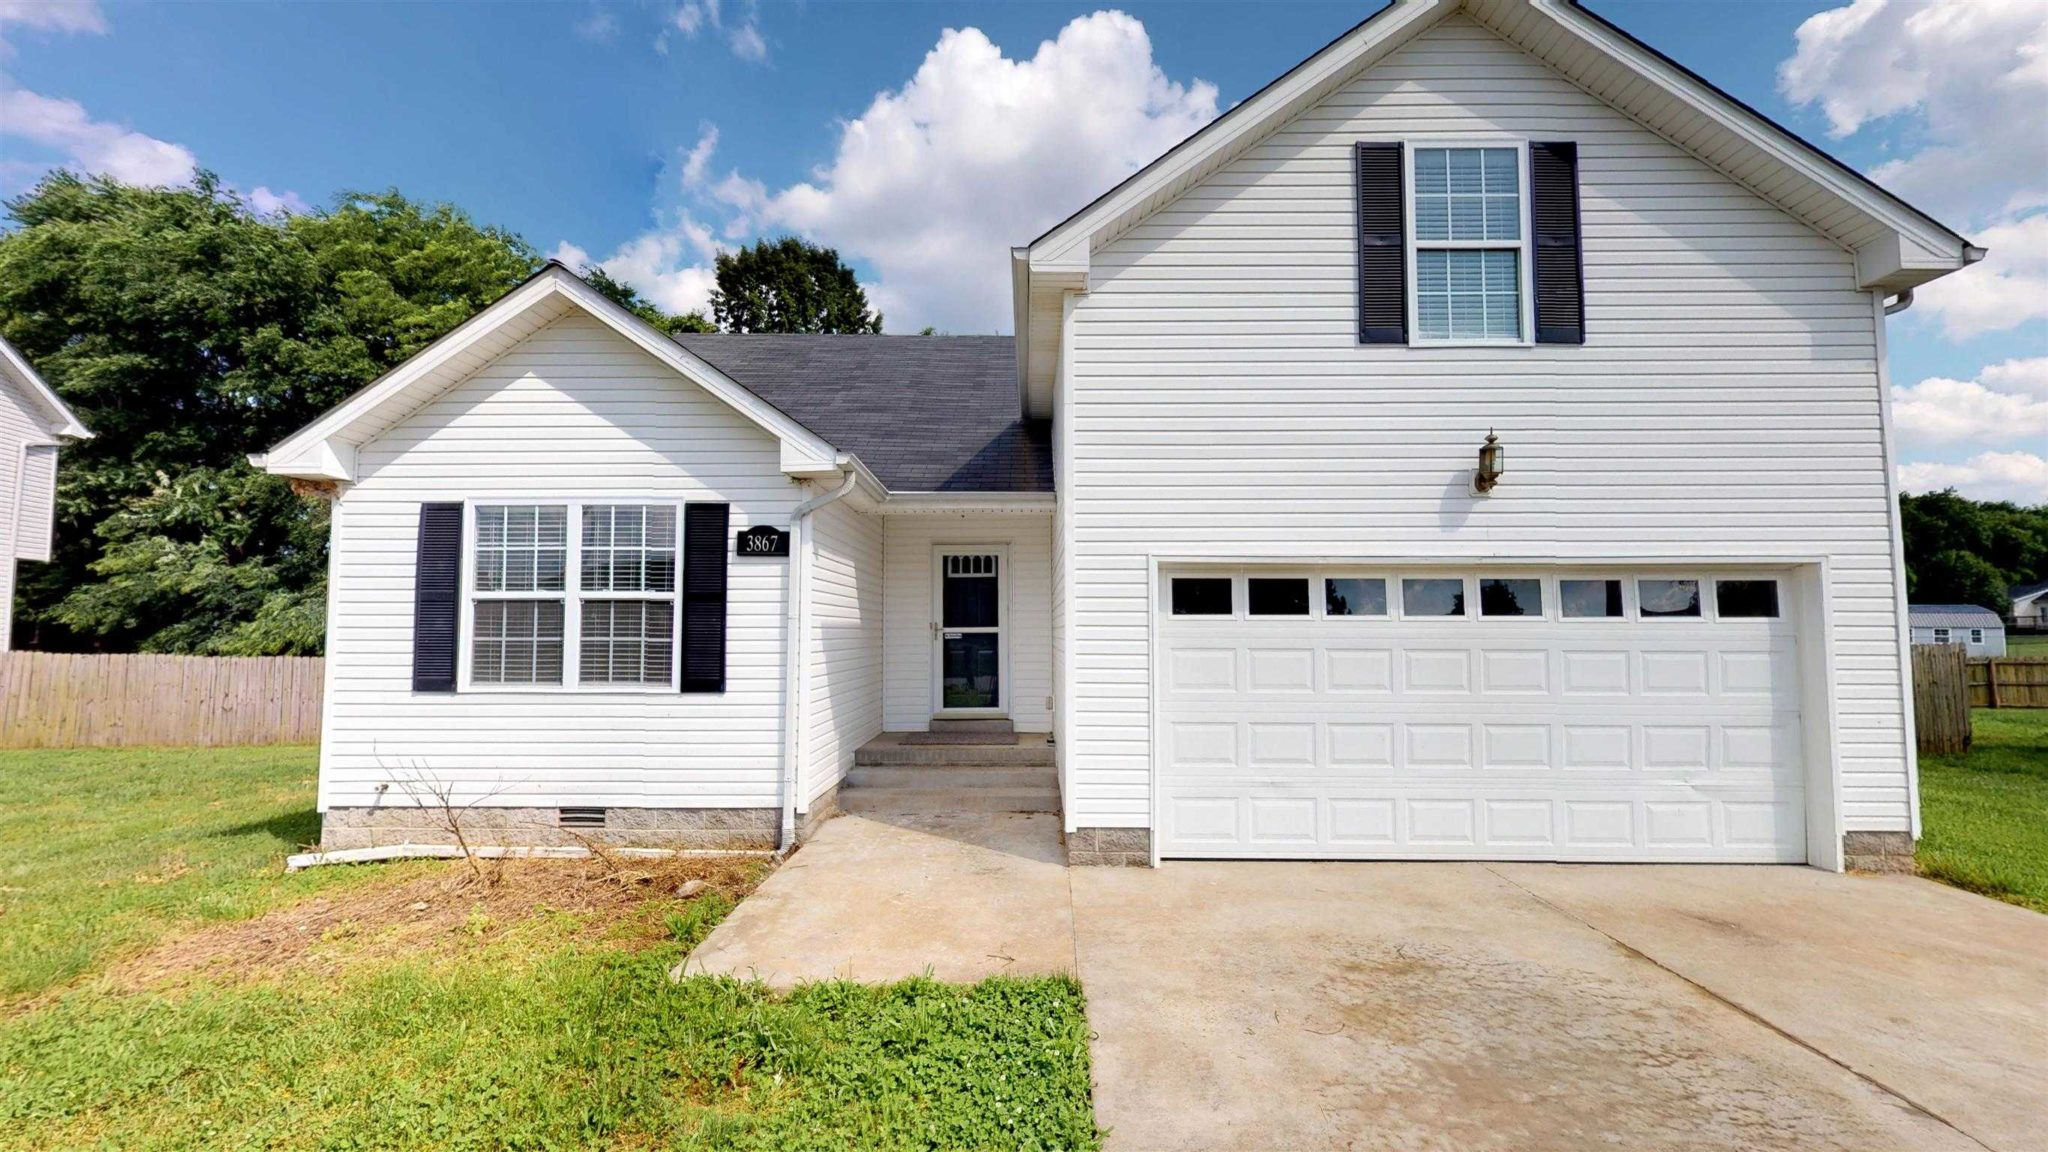 hazelwood clarksville tennessee house for sale